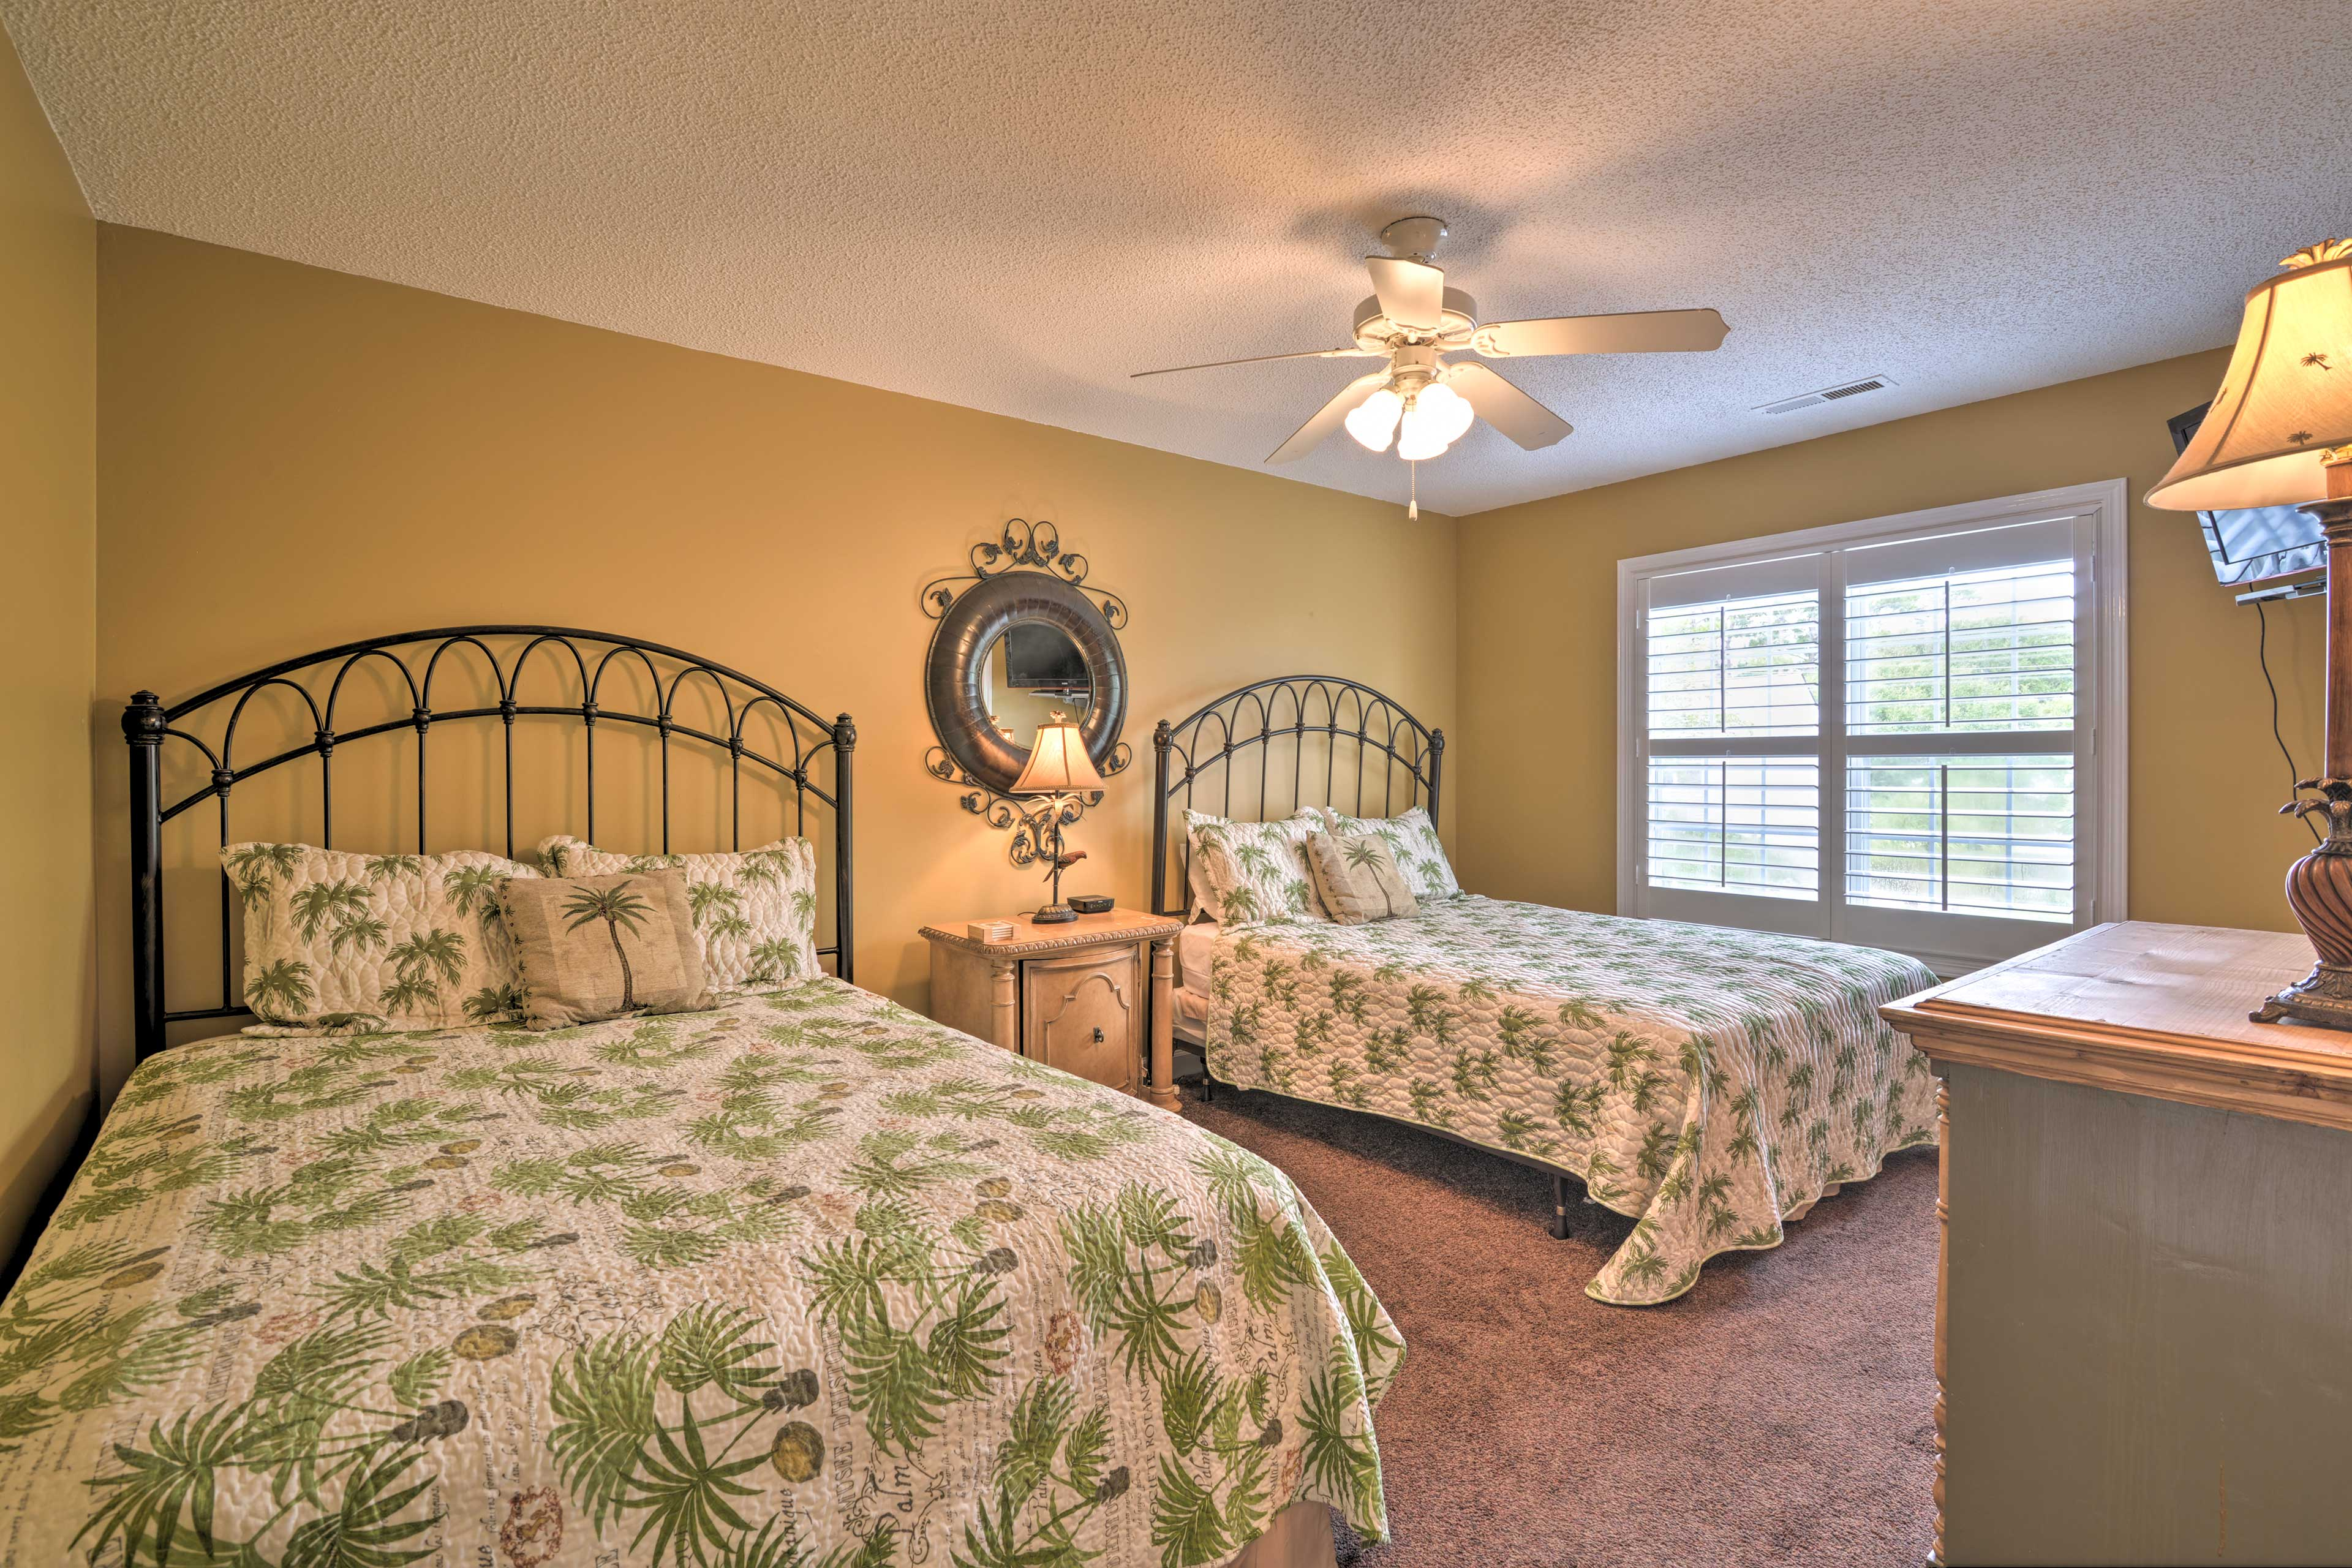 Easily sleep up to 4 guests in this bedroom.